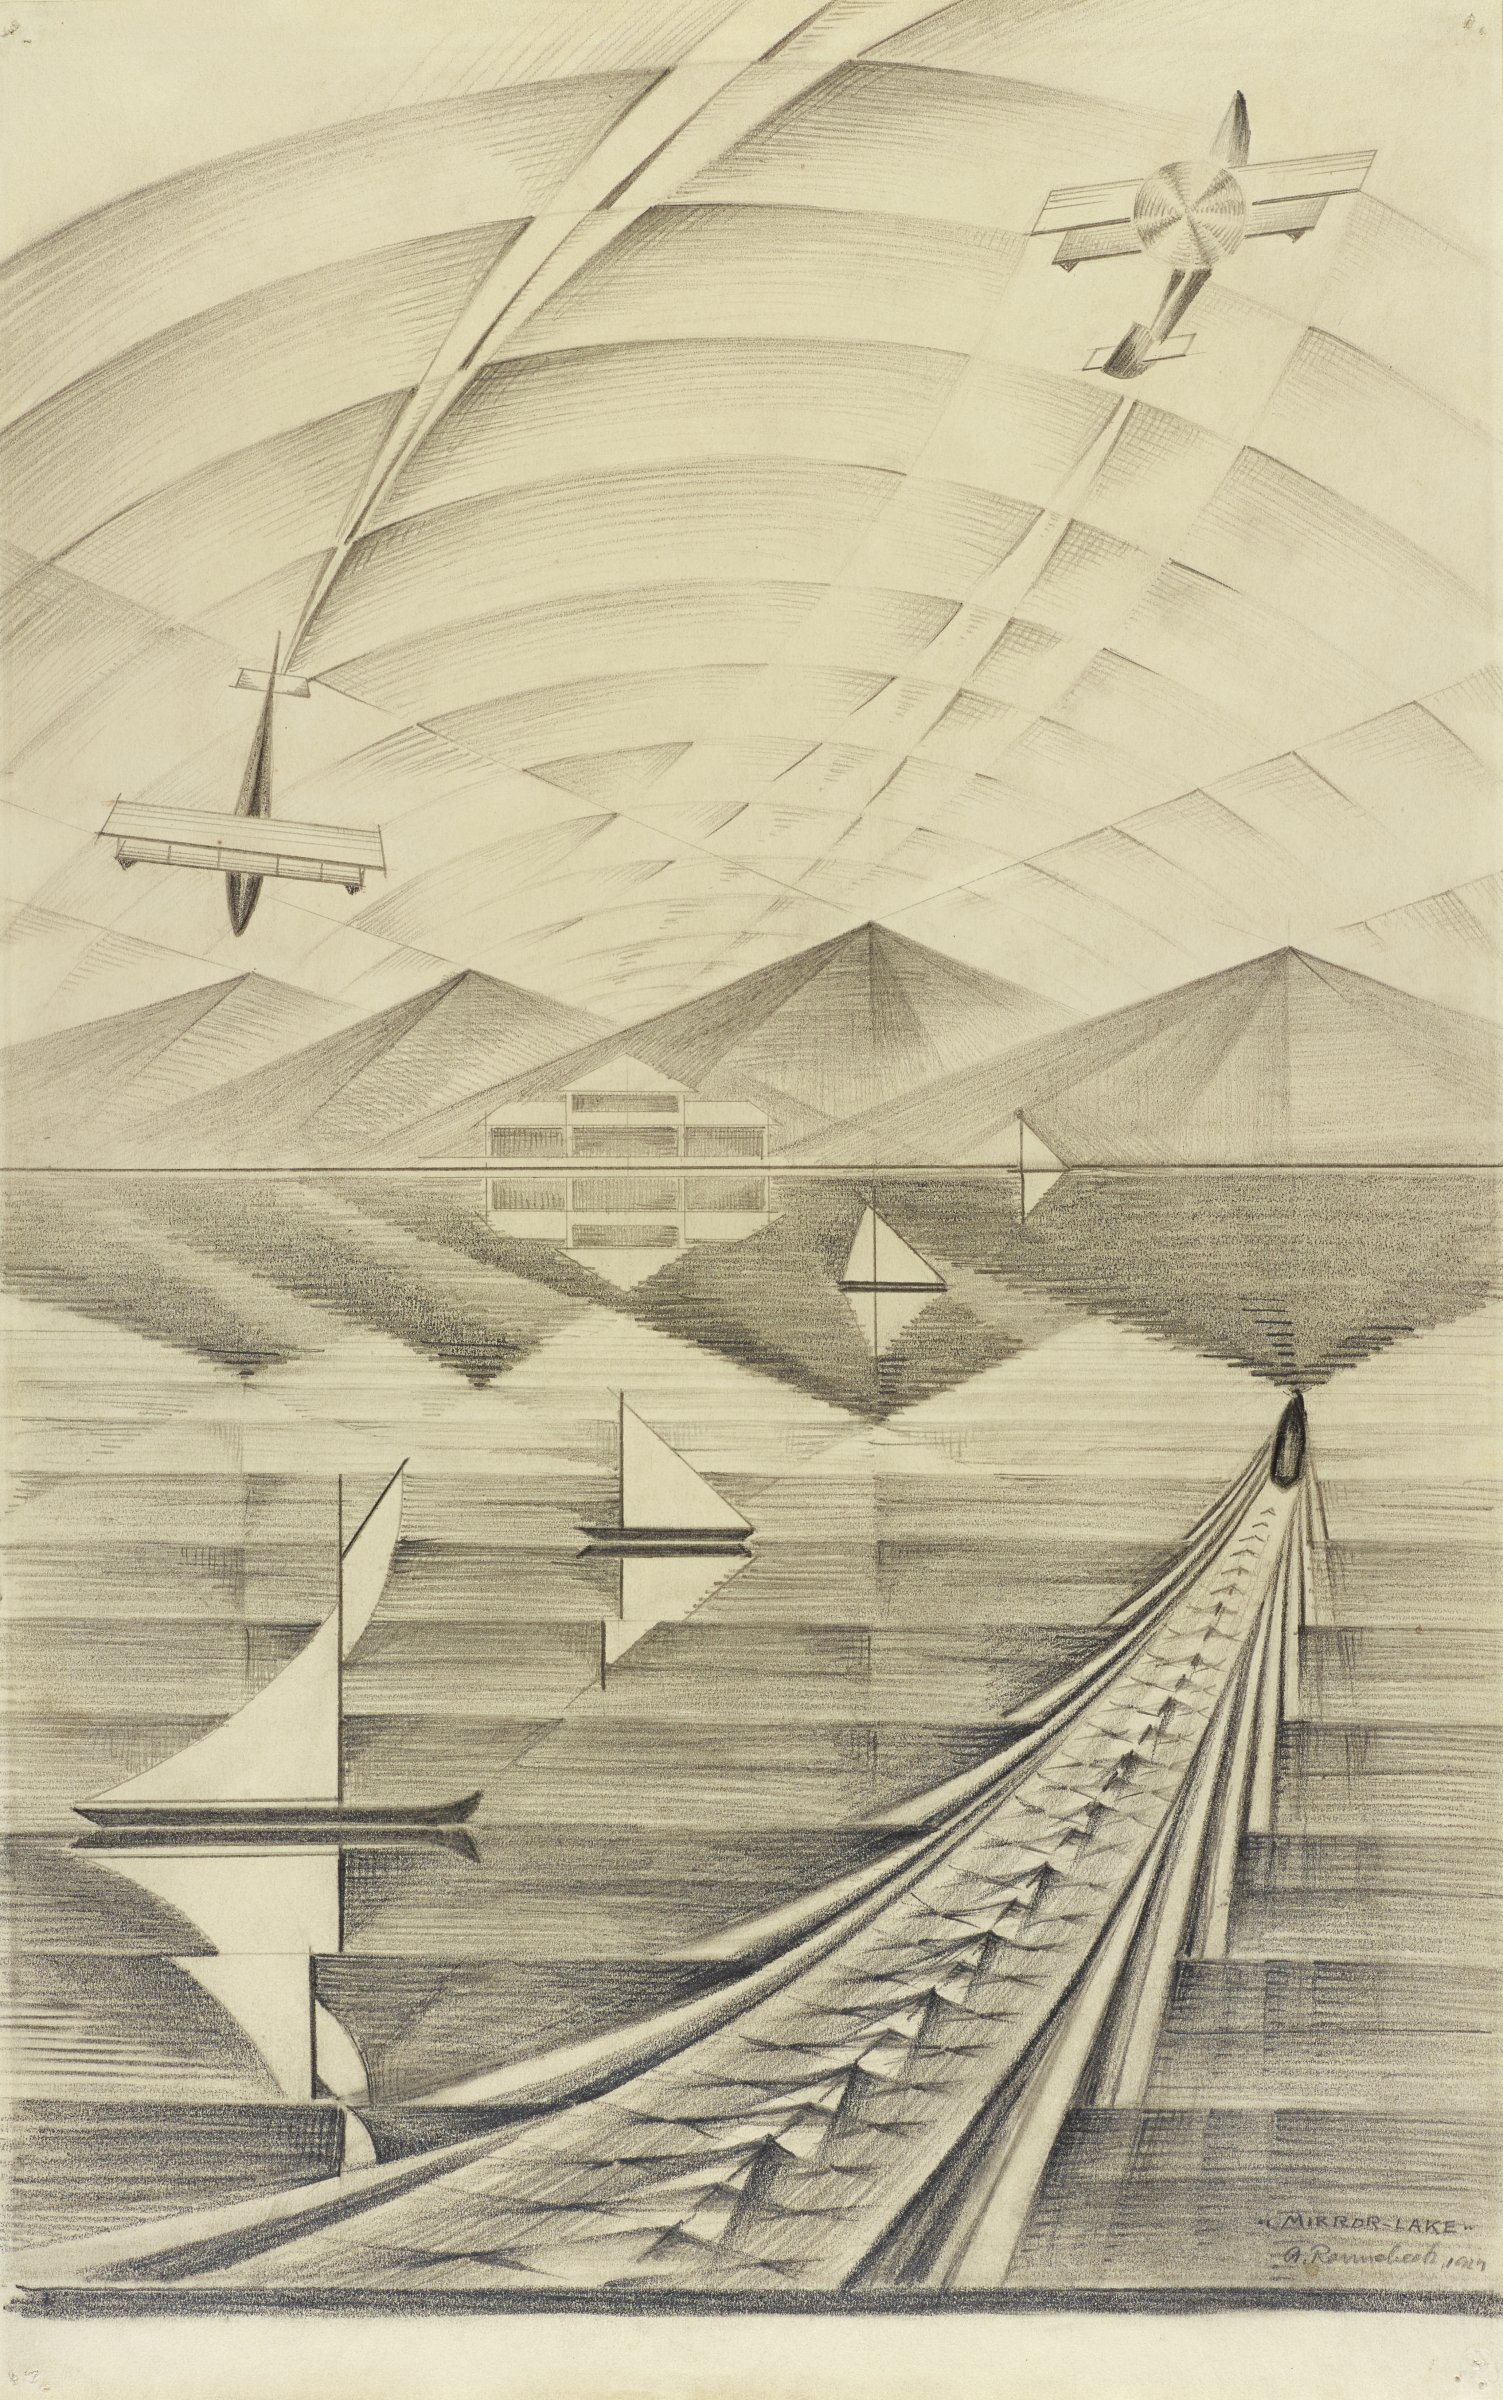 In this black and white graphite drawing, boats and airplanes move through fractured planes of water and sky. The drawing represents five boats on the water, one moving toward the mountainous shore and four stagnant on the water. In addition to four peaks, on the shore there is also a lodge. Above the peaks fly two biplanes, one swirling toward the top edge of the drawing and the other dipping toward the top of the peaks. At the bottom of the sheet the drawing is defined by a dark horizontal line and a blank piece of the page measuring about half of an inch.